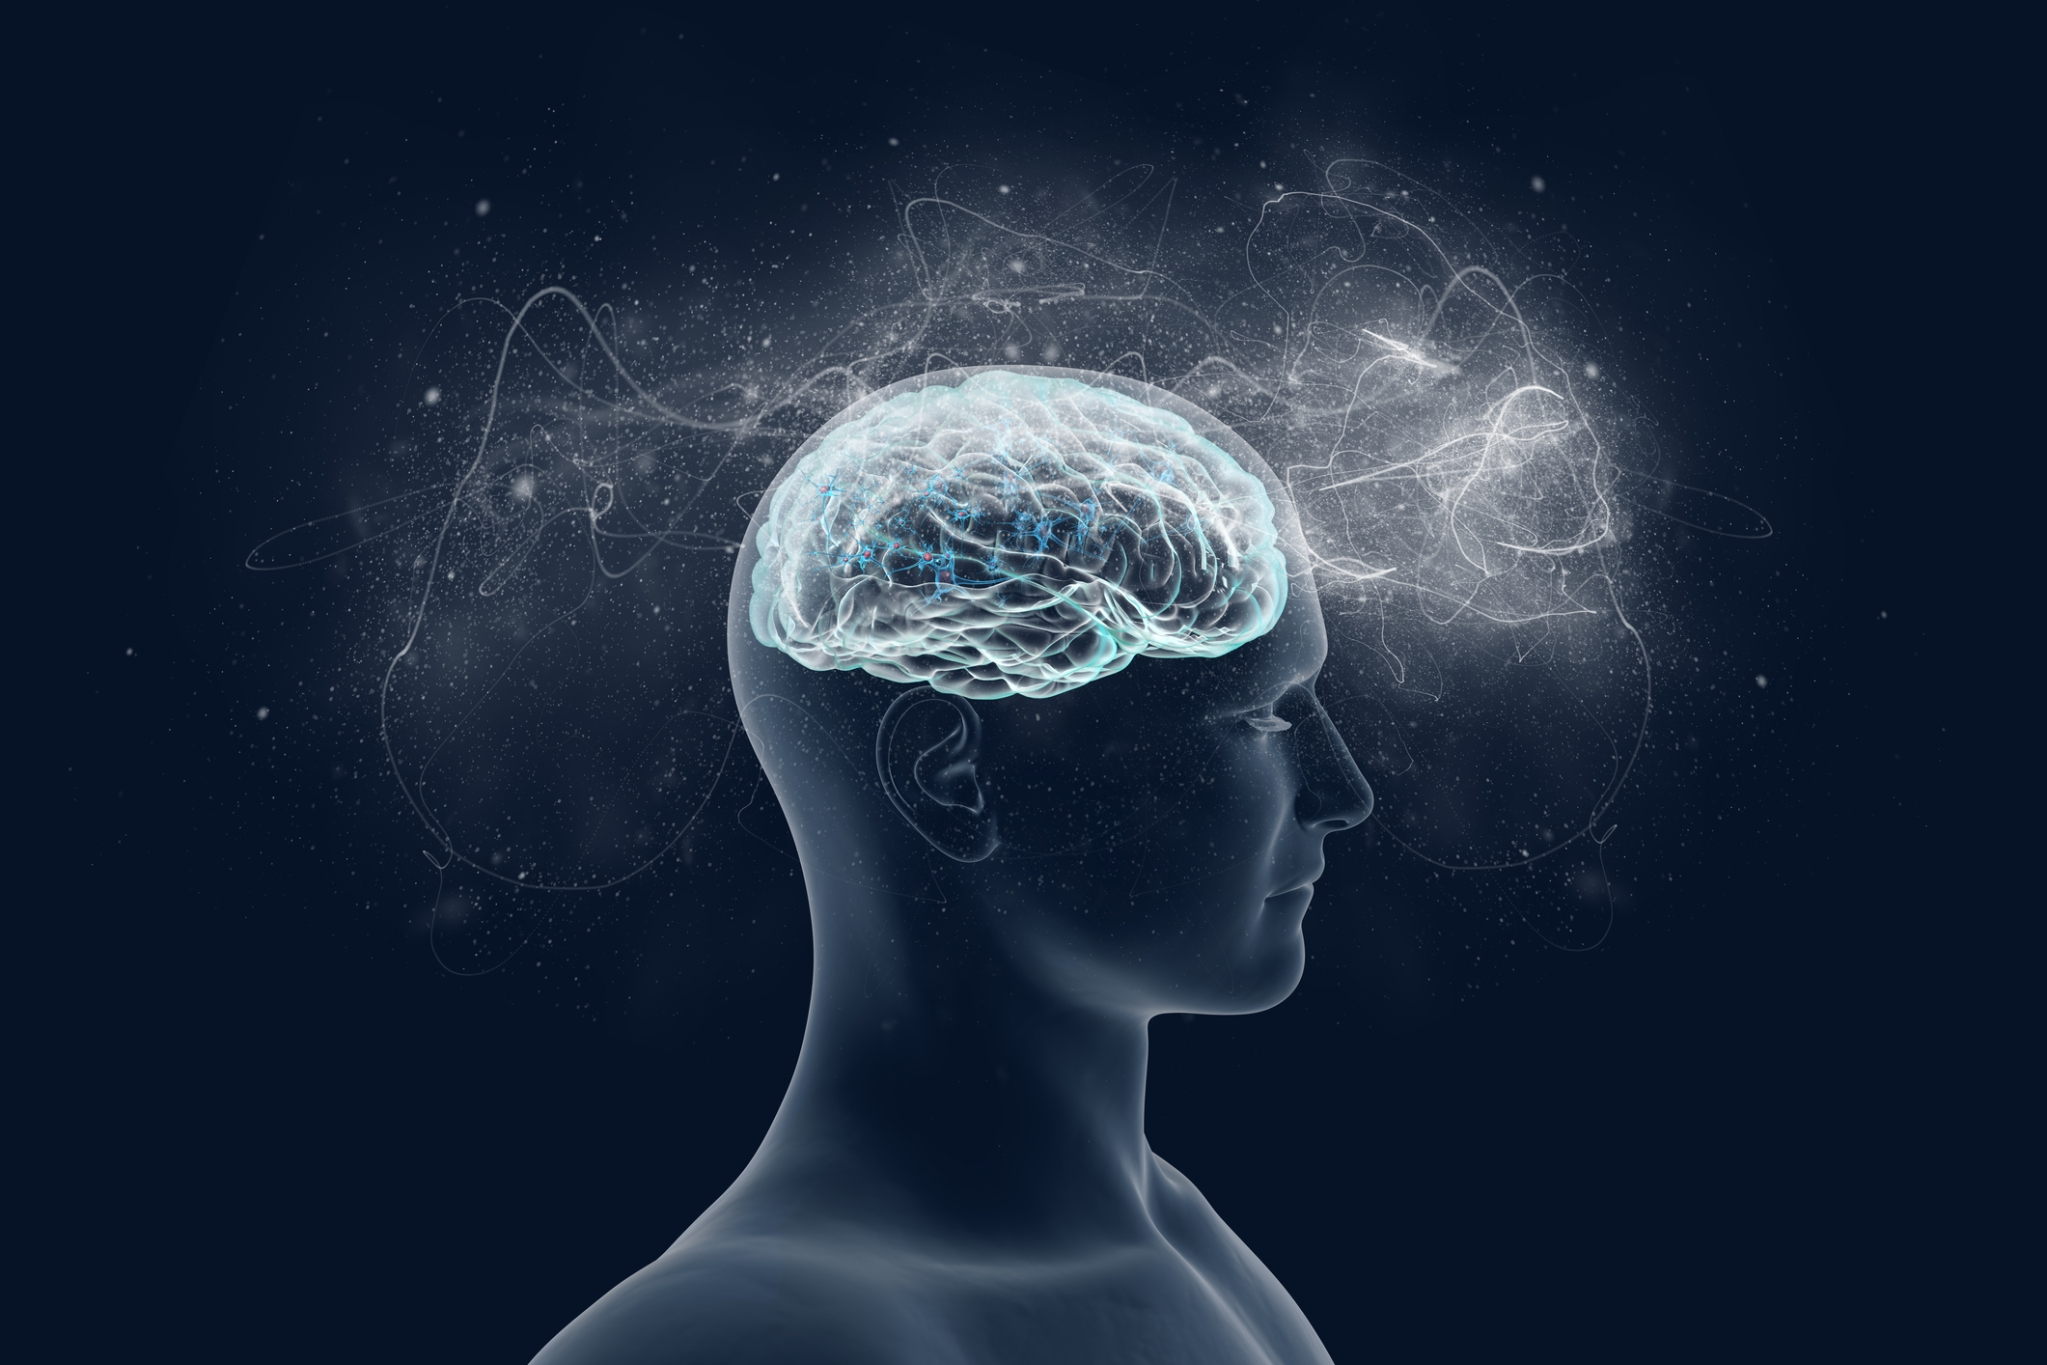 Brain Function Gets Better While Inhaling